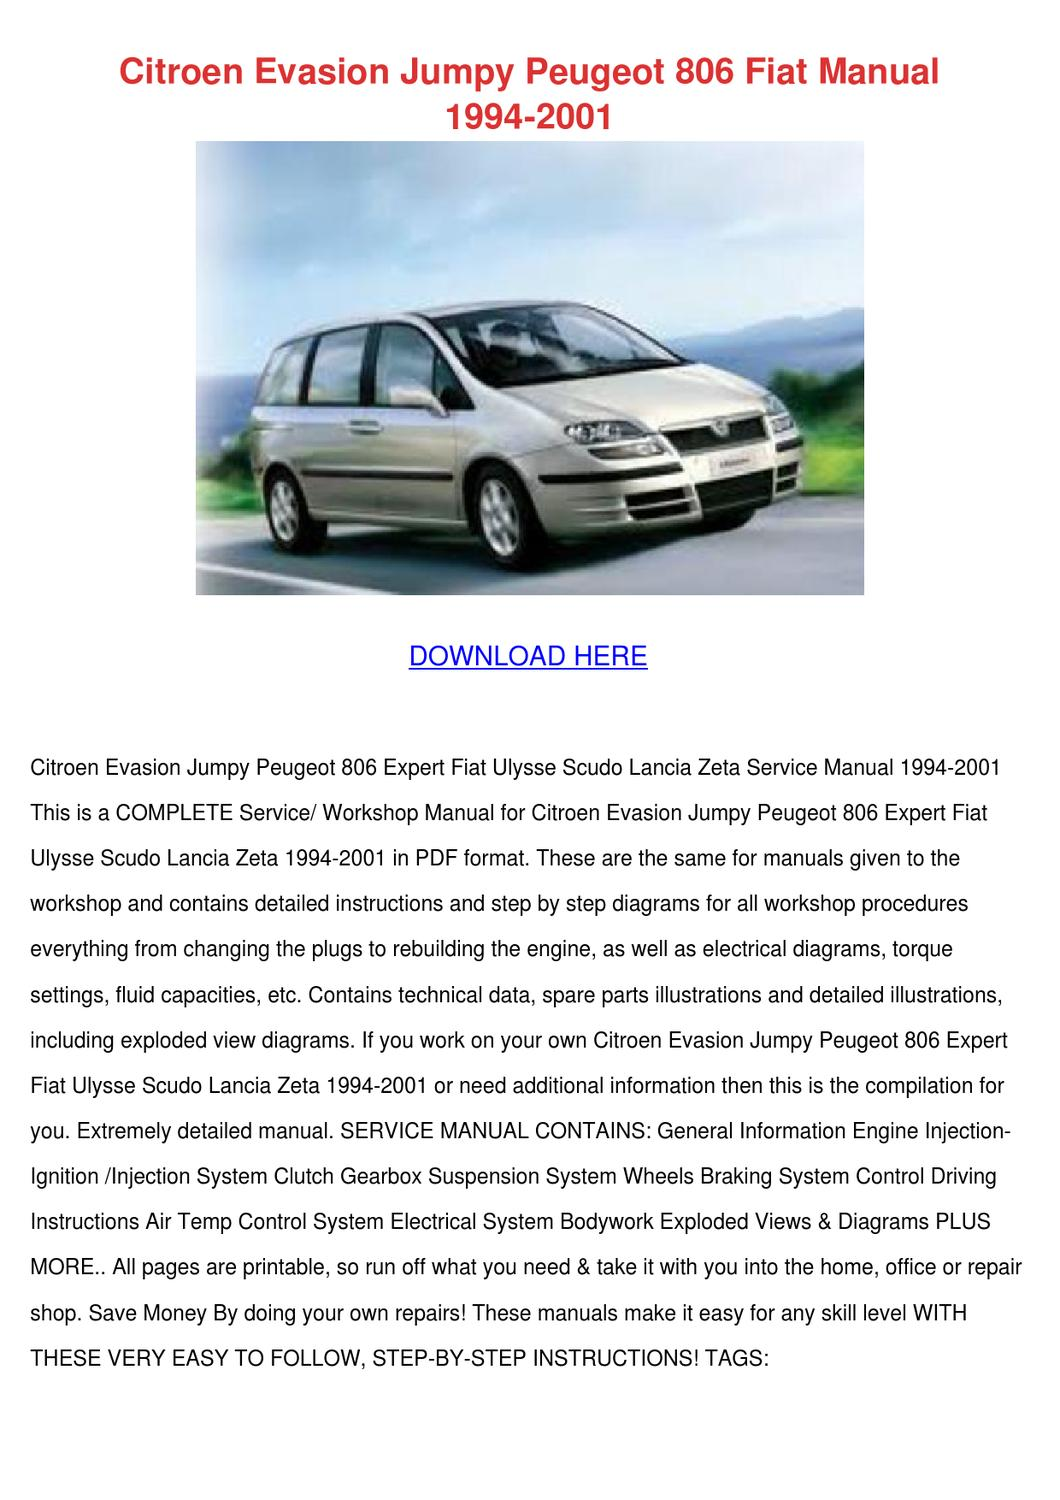 Citroen Evasion Jumpy Peugeot 806 Fiat Manual By Aaronware Issuu Ulysse Wiring Diagrams